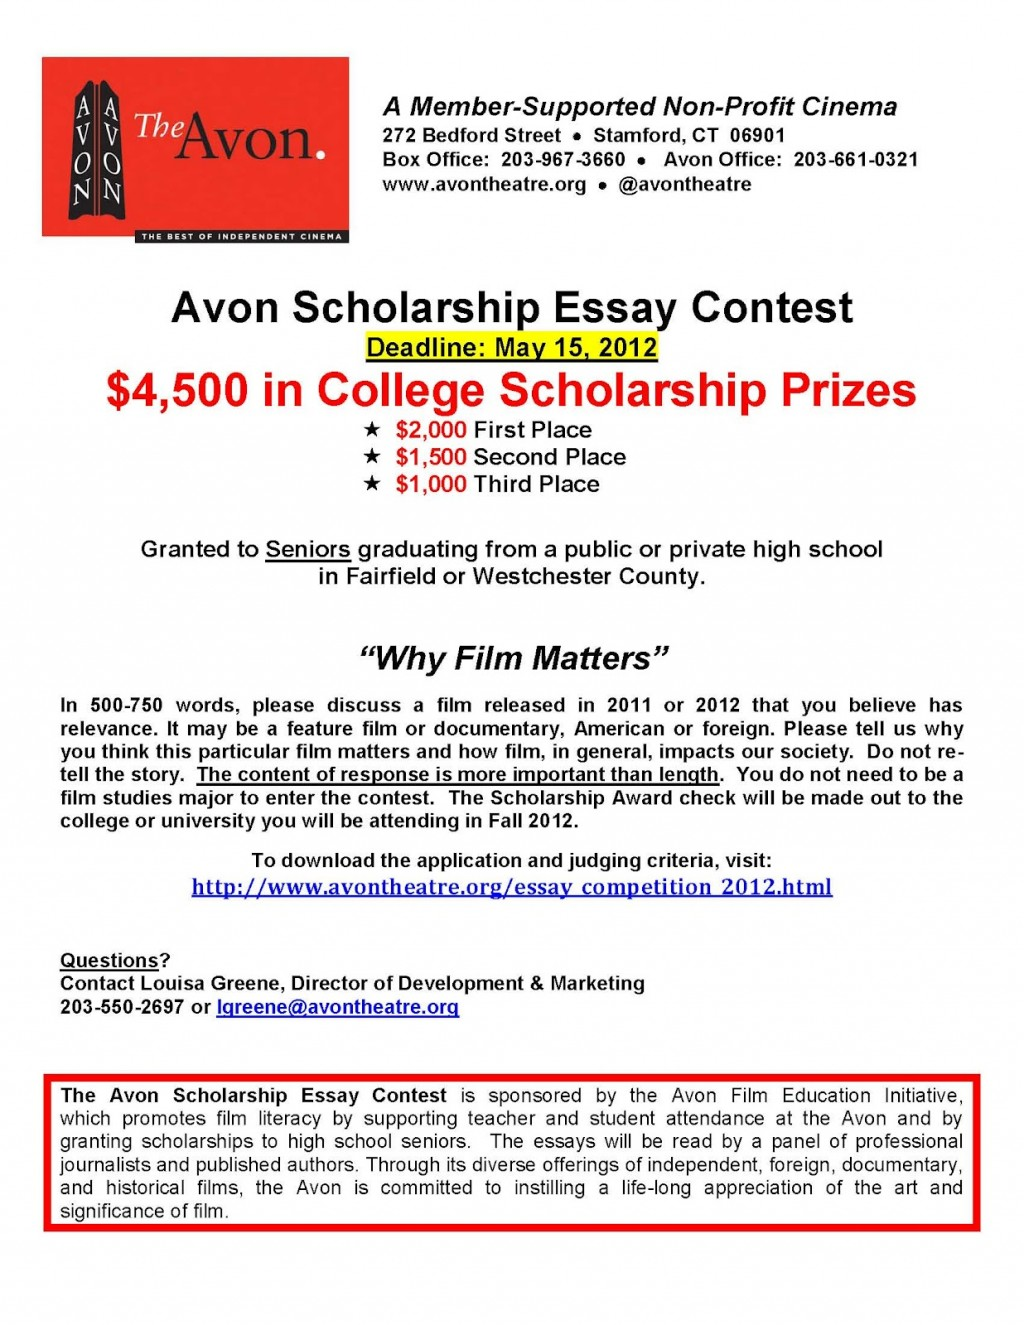 003 No Essay College Scholarship Prowler Free Scholarships For High School Seniors Avonscholarshipessaycontest2012 In Texas California Class Of Short Unbelievable With Without Essays Required 2017 Large